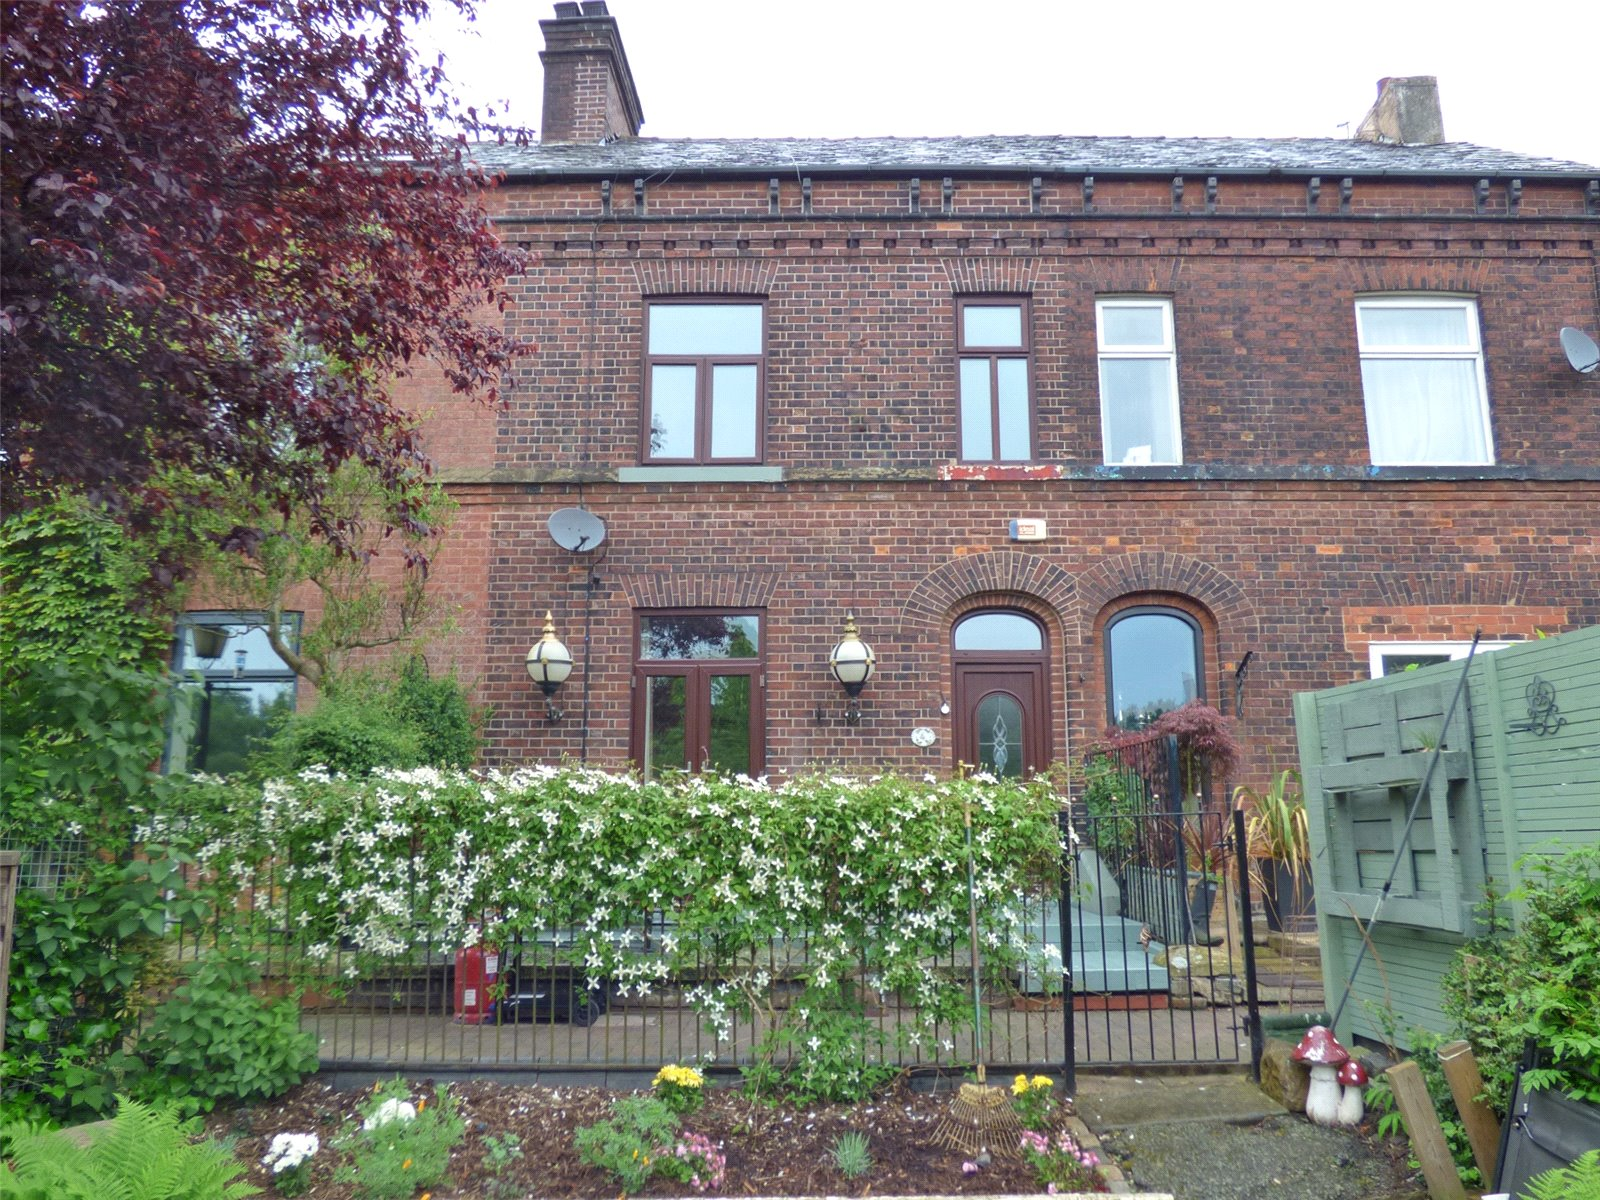 3 Bedrooms Terraced House for sale in Holly Bank, Off Williams Road, New Moston, Manchester, M40